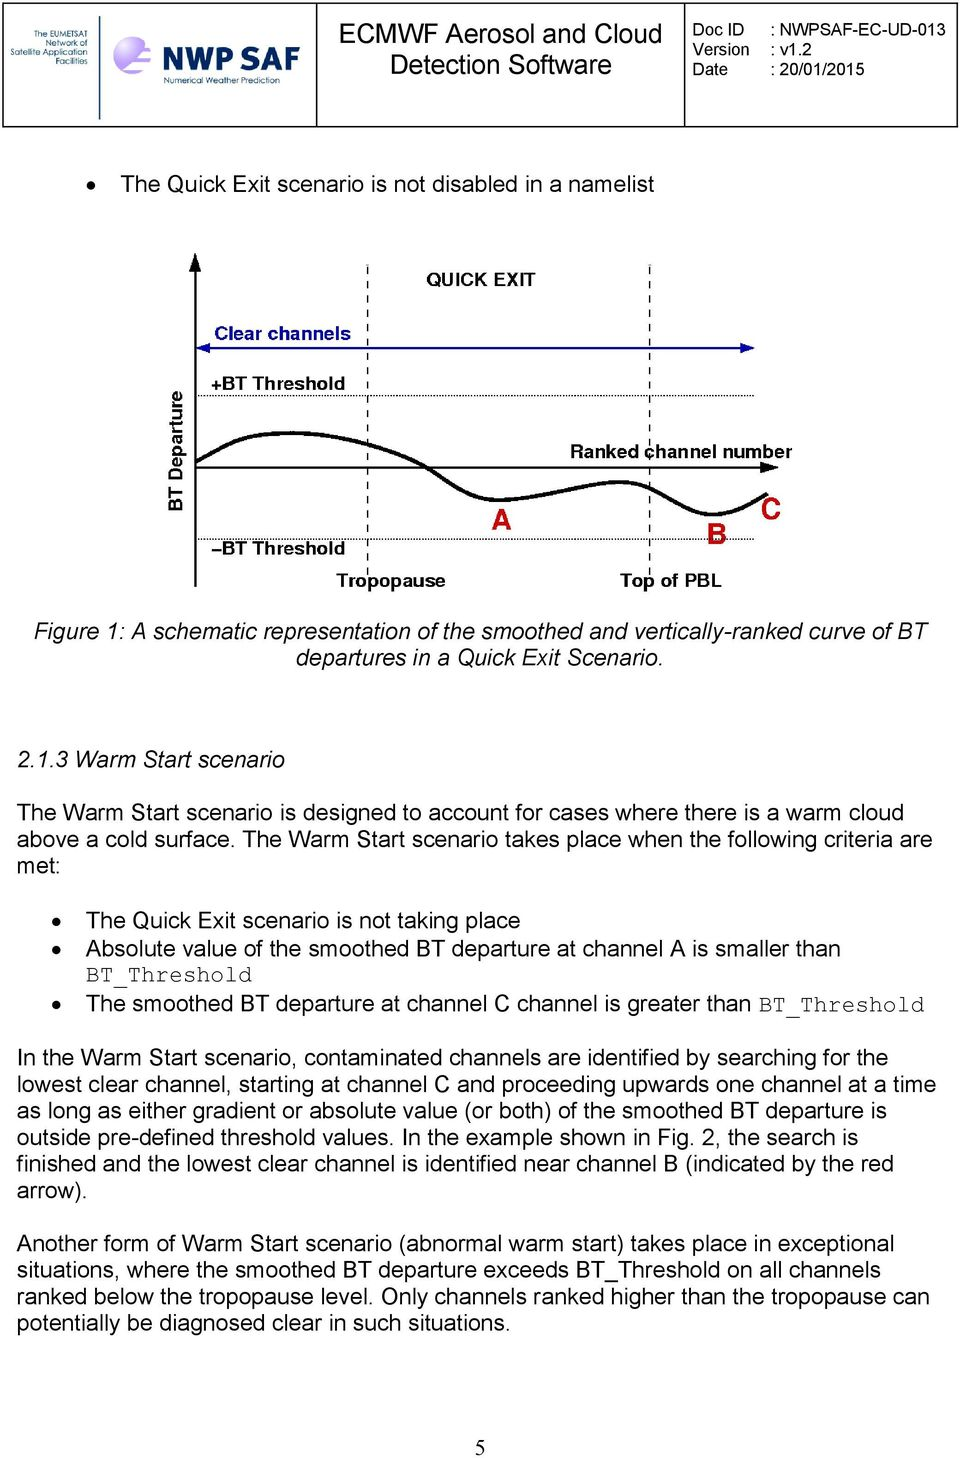 BT_Threshold The smoothed BT departure at channel C channel is greater than BT_Threshold In the Warm Start scenario, contaminated channels are identified by searching for the lowest clear channel,